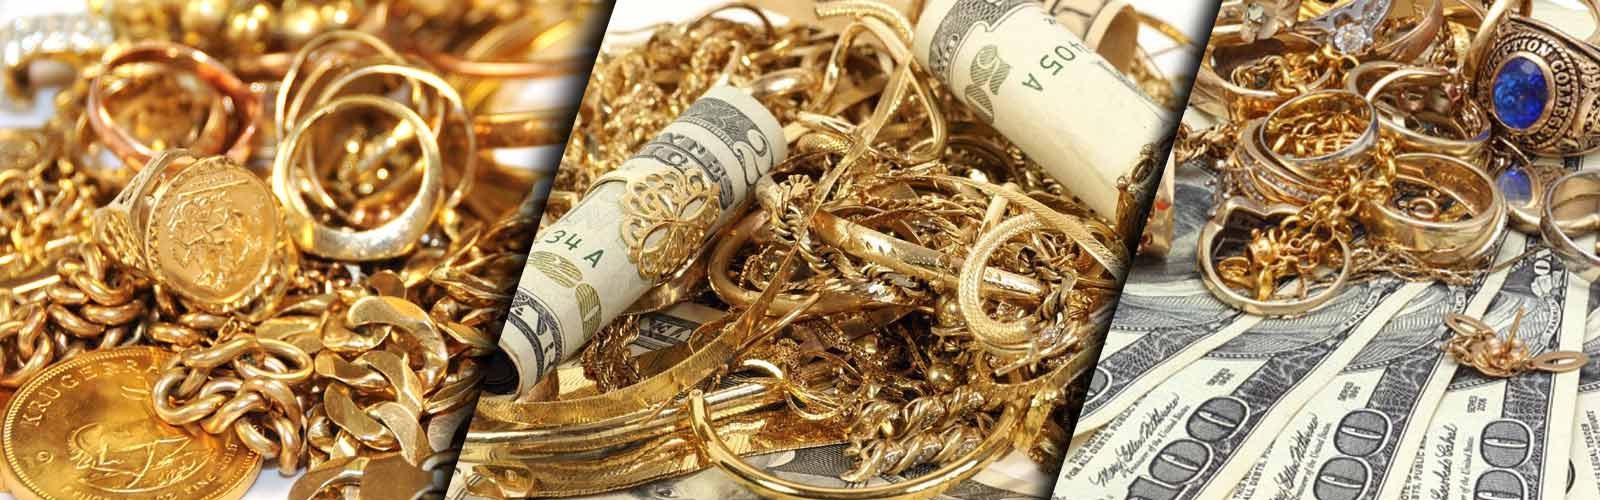 Sell gold nyc best gold buyer in manhattan scrap gold for New top jewelry nyc prices